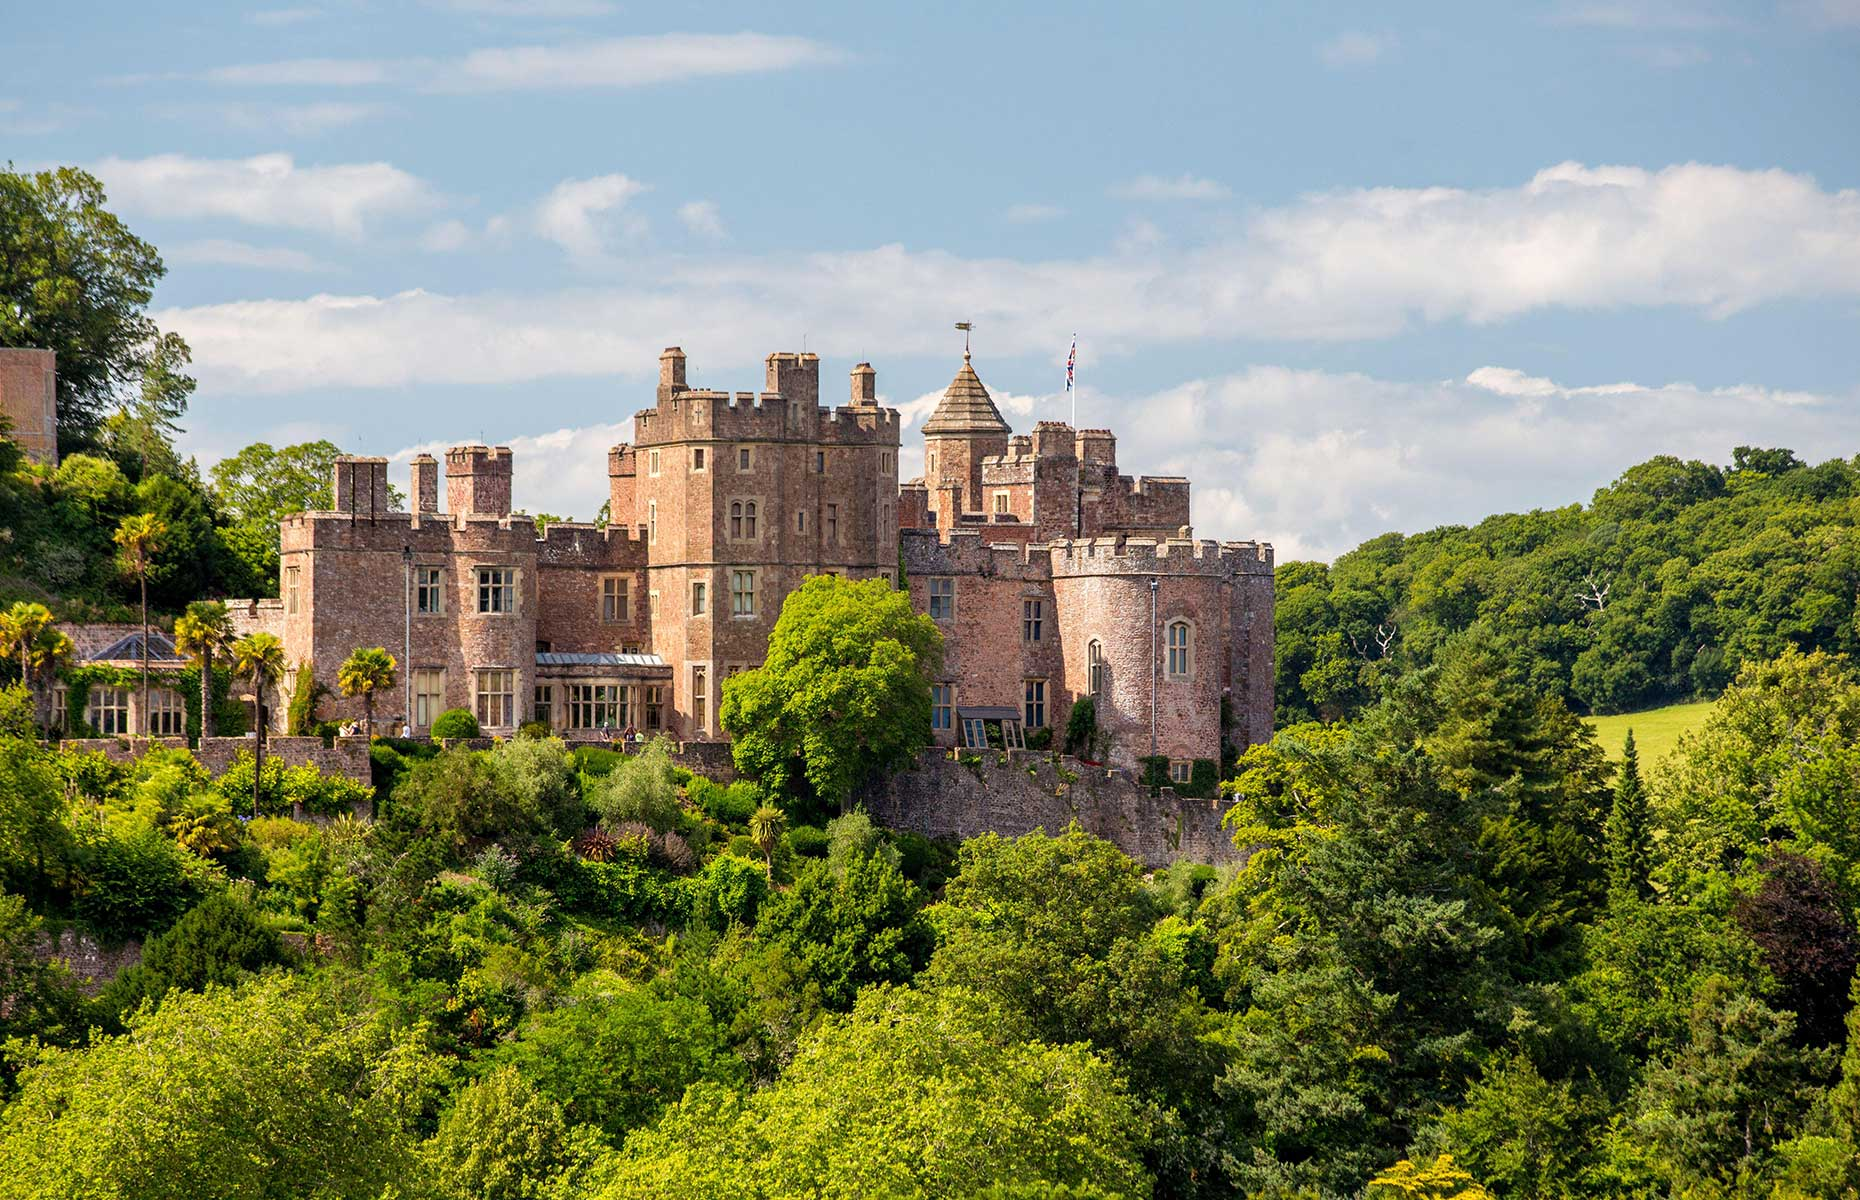 Dunster Castle viewed from a distance in summer with the red brick contrasting against the green trees (Andrew Duke/Alamy Stock Photo)